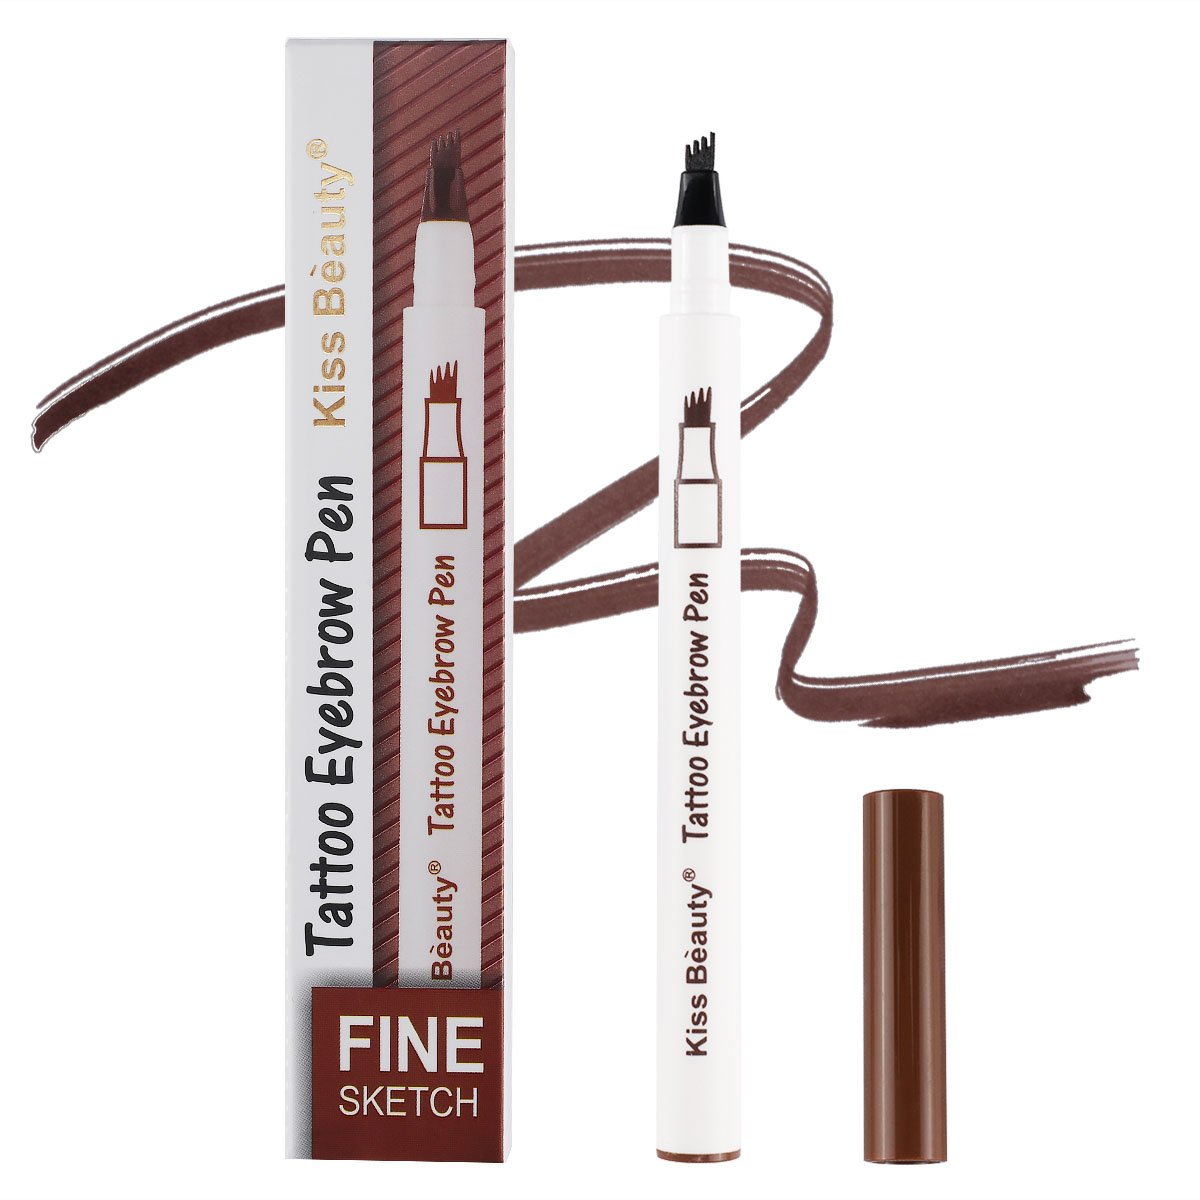 Liquid Eyebrow Pen with Four Tips Tattoo Sense Of Super Duarable,Fine Sketch,Easy To Color, Smudge-proof,Waterproof Brow Gel for Eyes Makeup,(#02 Brown)